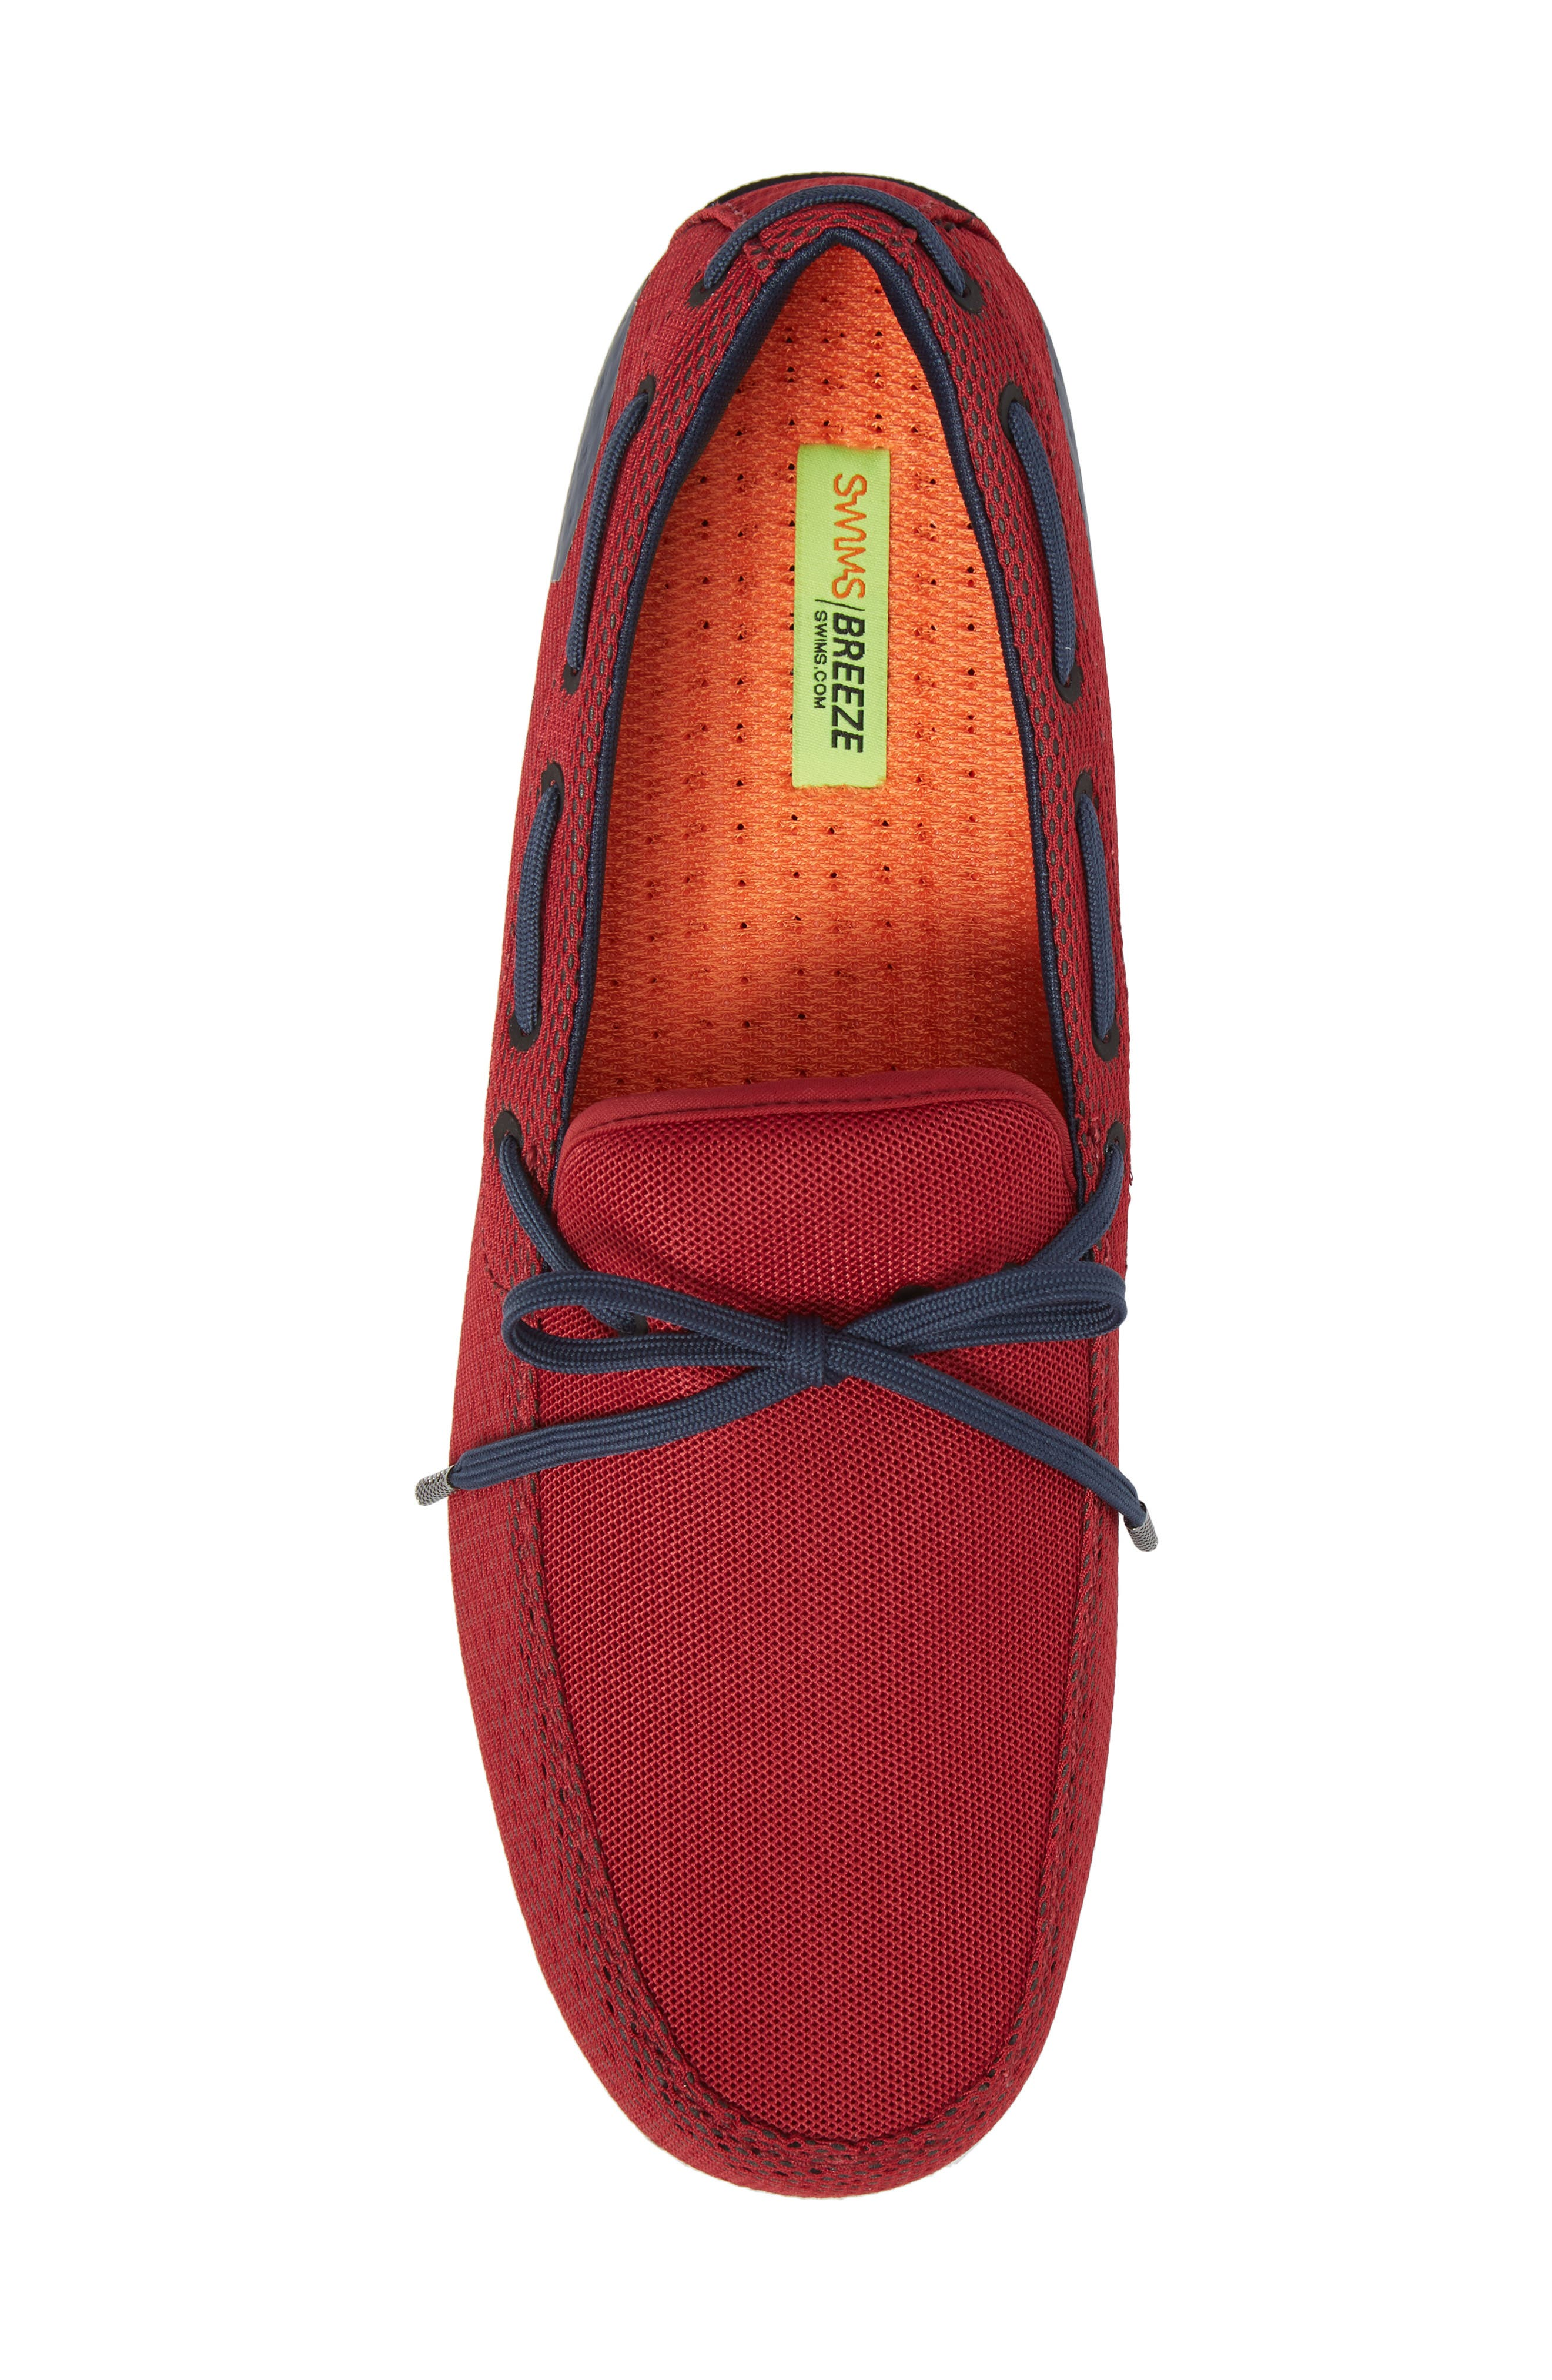 Breeze Loafer,                             Alternate thumbnail 3, color,                             Deep Red/ Navy/ White